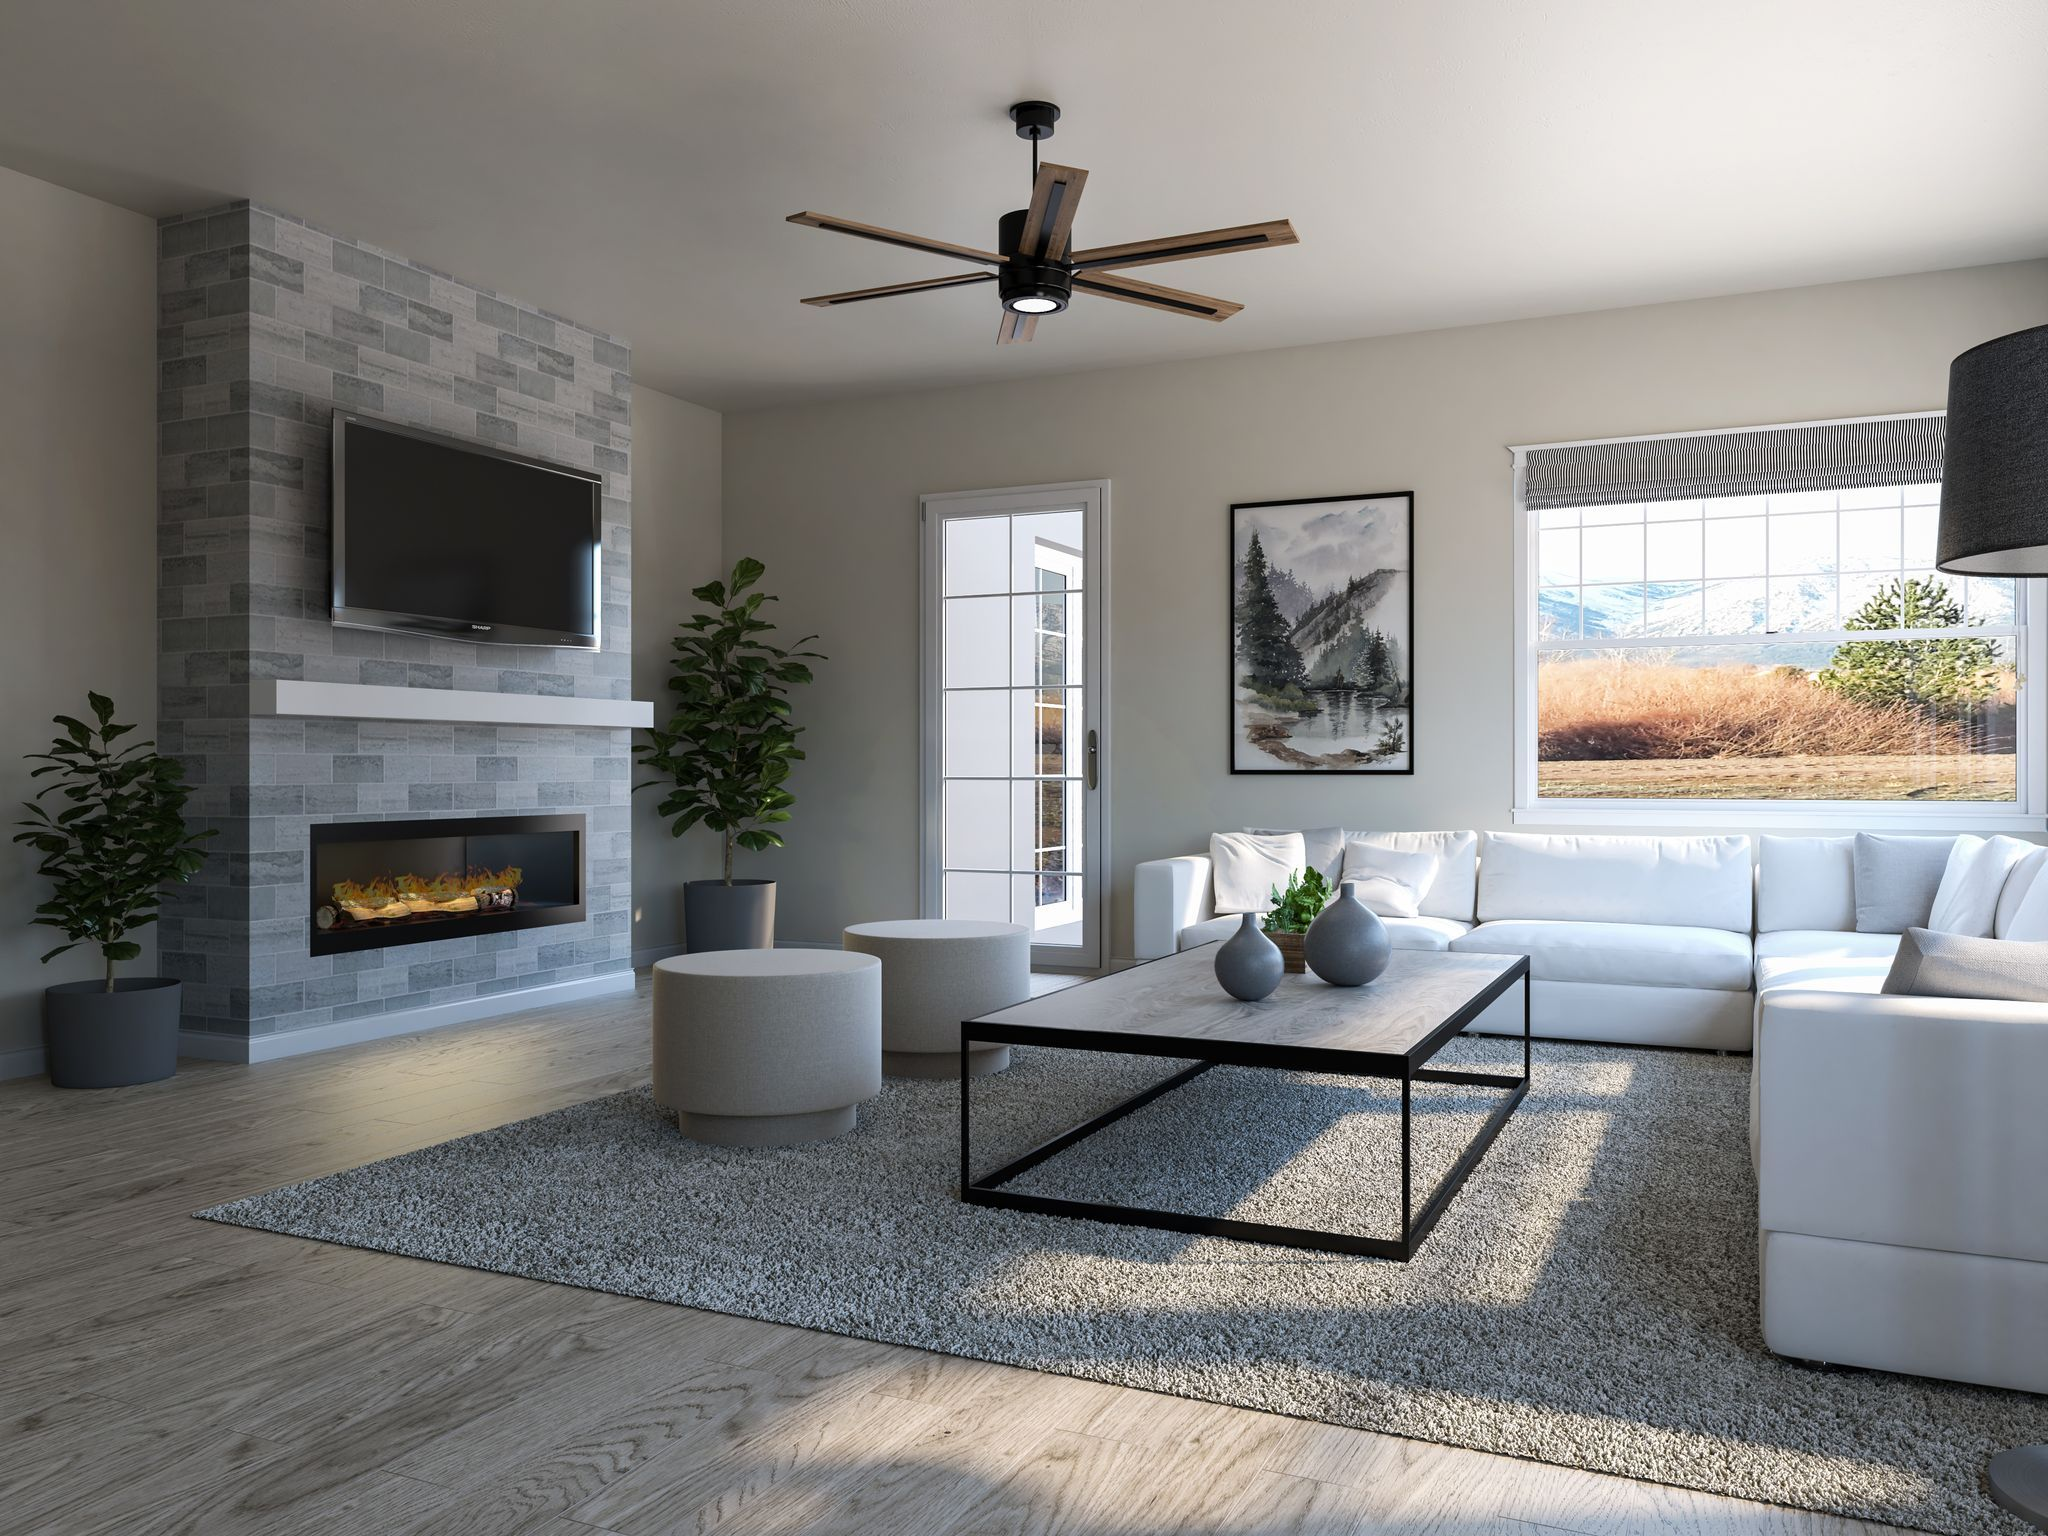 Living Area featured in the Residence 3 By Santa Ynez Valley Construction in Reno, NV